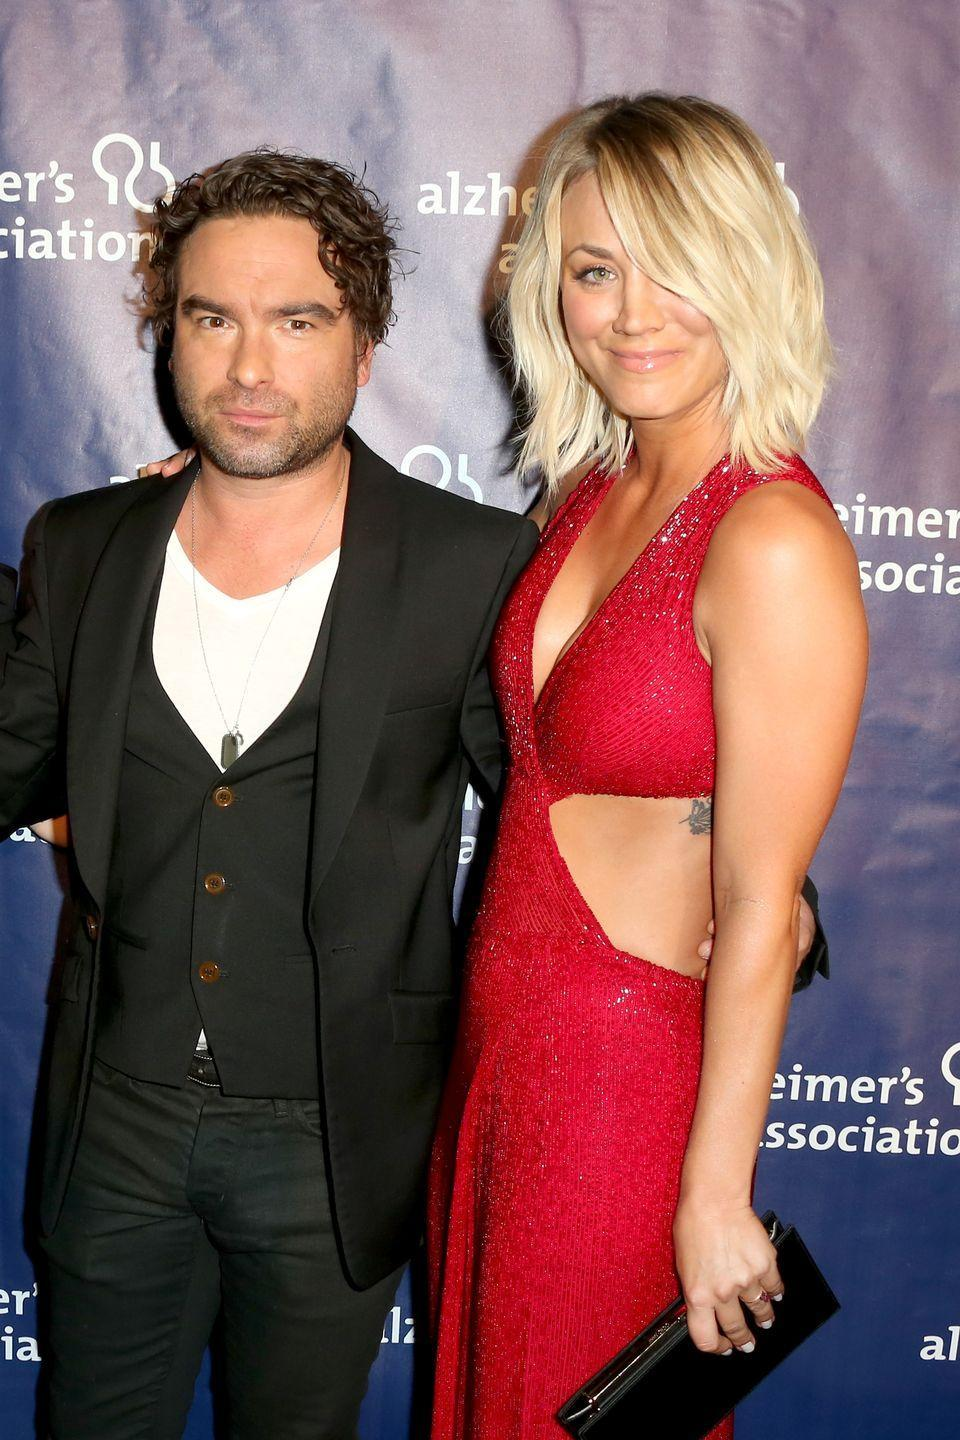 "<p>Fiction imitated reality when <em>The Big Bang Theory</em> co-stars Cuoco and Galecki began dating in real life as their characters Penny and Leonard were dating on screen. After a two year relationship, they decided to go back to being 'just' friends <a href=""http://www.huffingtonpost.com/entry/kaley-cuoco-johnny-galecki-dating-rumors_us_561fdae1e4b028dd7ea70059"" rel=""nofollow noopener"" target=""_blank"" data-ylk=""slk:in 2009"" class=""link rapid-noclick-resp"">in 2009</a>. With the show about to start its 10th season, rumor has it that the on-screen couple might be getting back together in real-life, but we'll have to see about that.</p>"